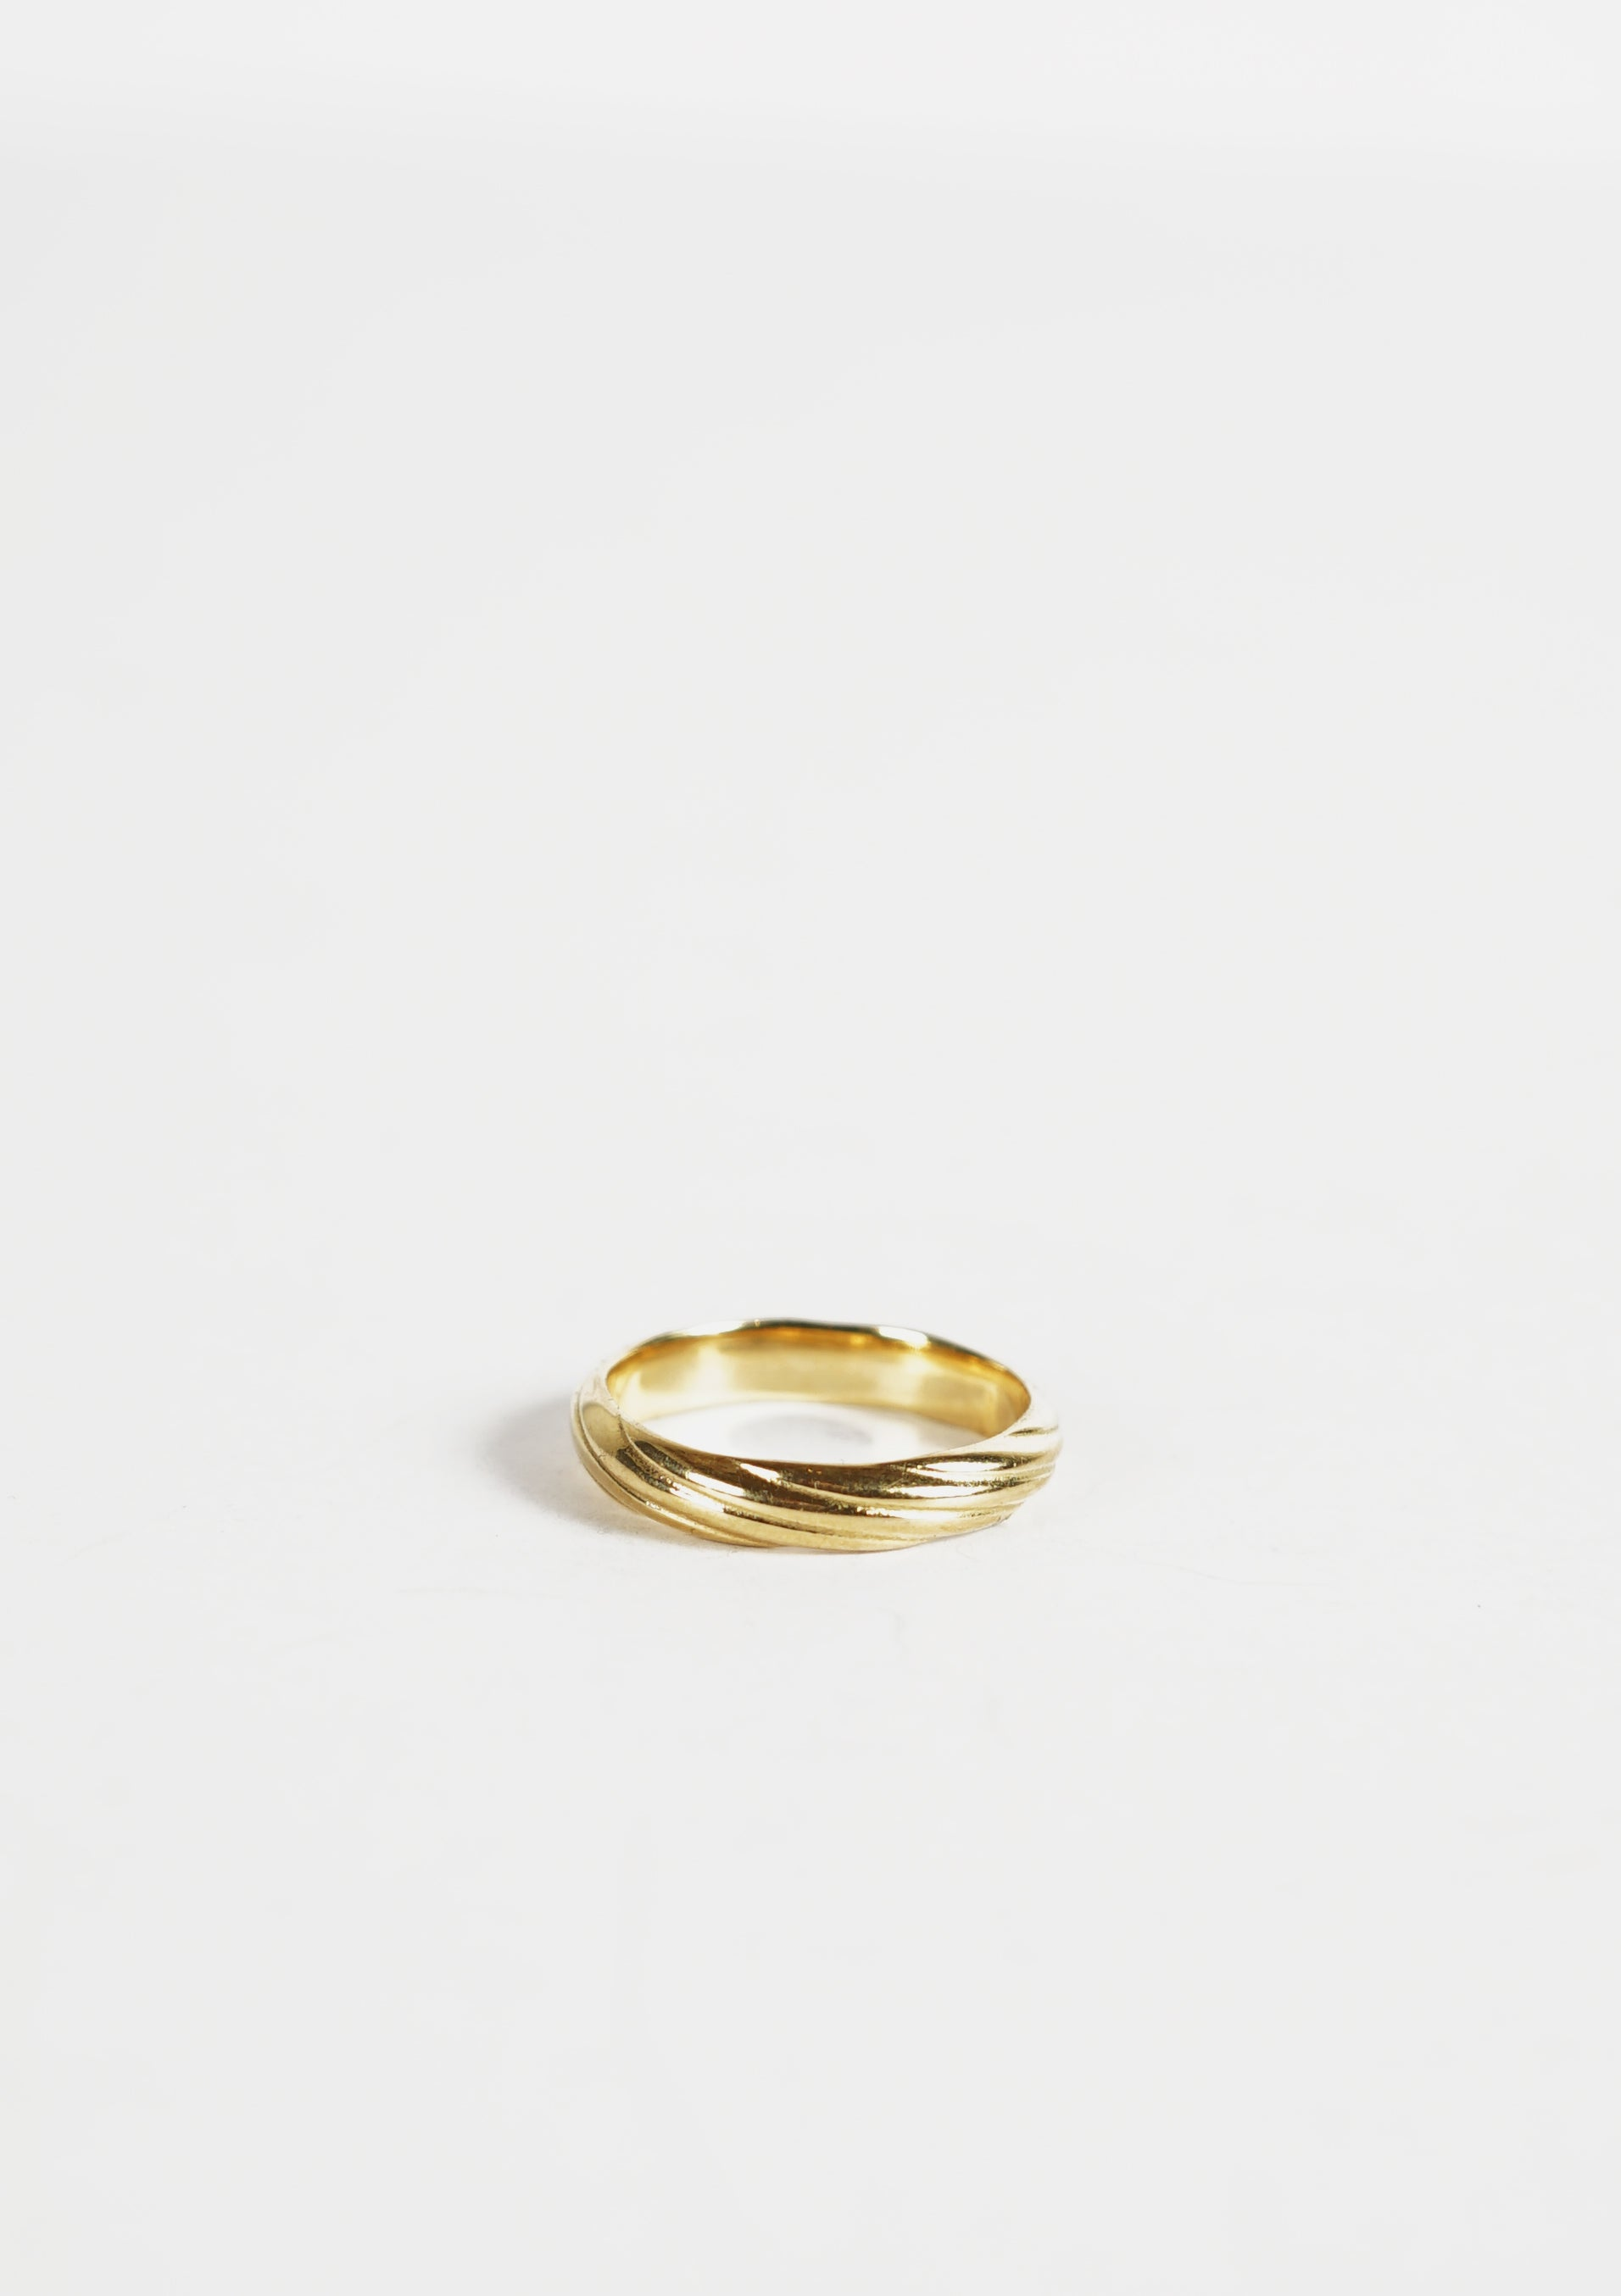 18k Gold Twisted Ring / 4mm